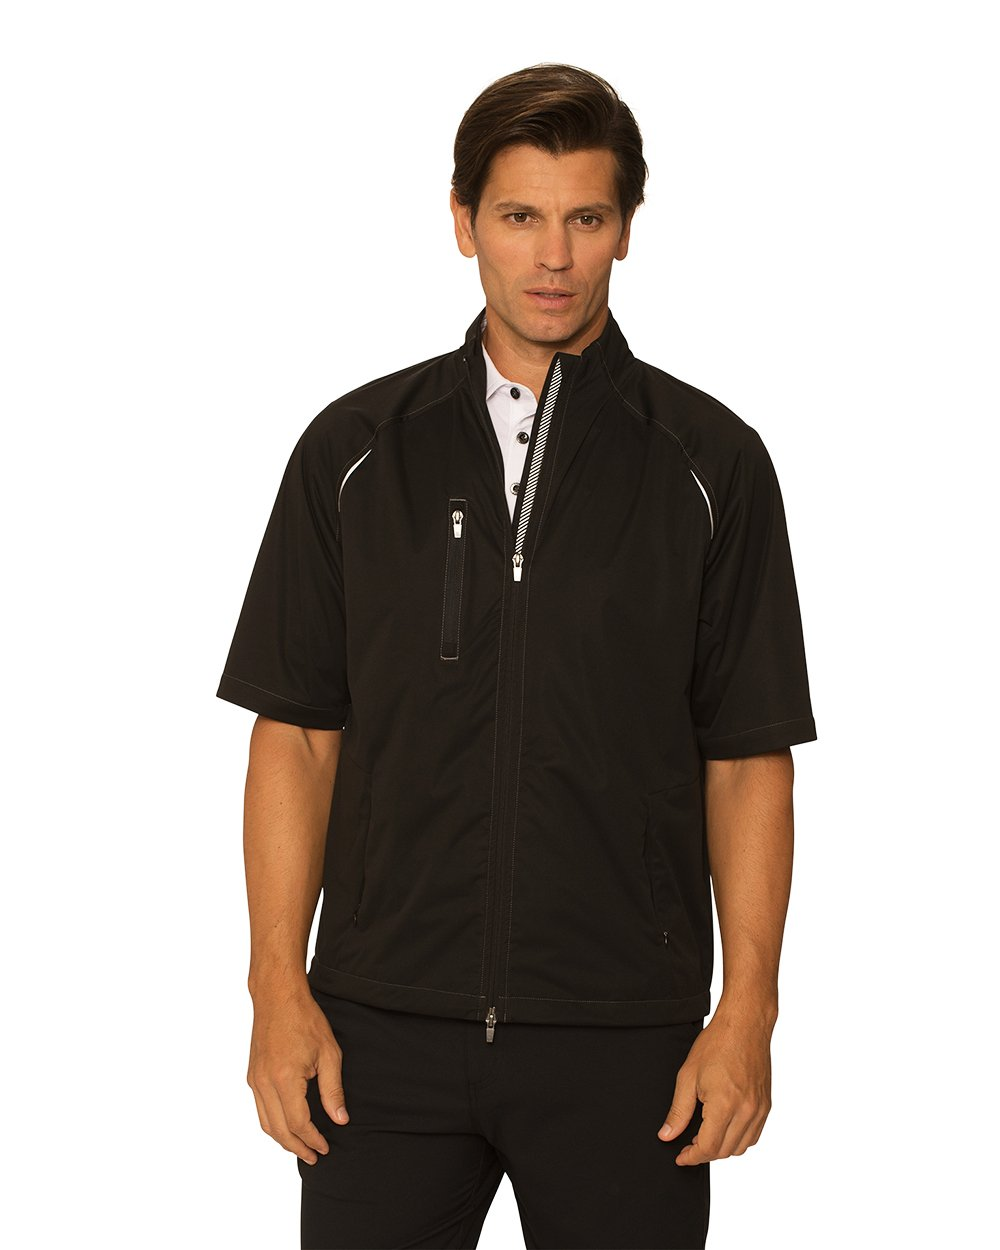 Chase54 Mens Bryce Short sleeve Wind Jacket, Black, Large